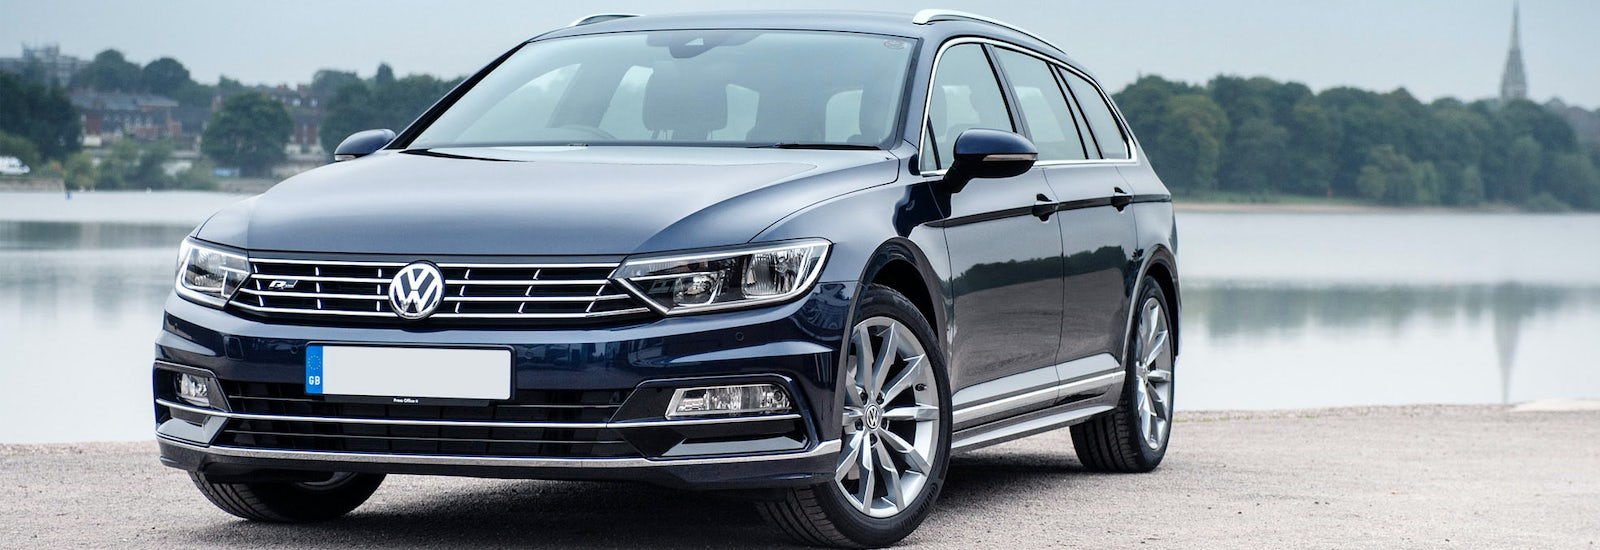 The top 10 best estate cars you can buy in 2017   carwow